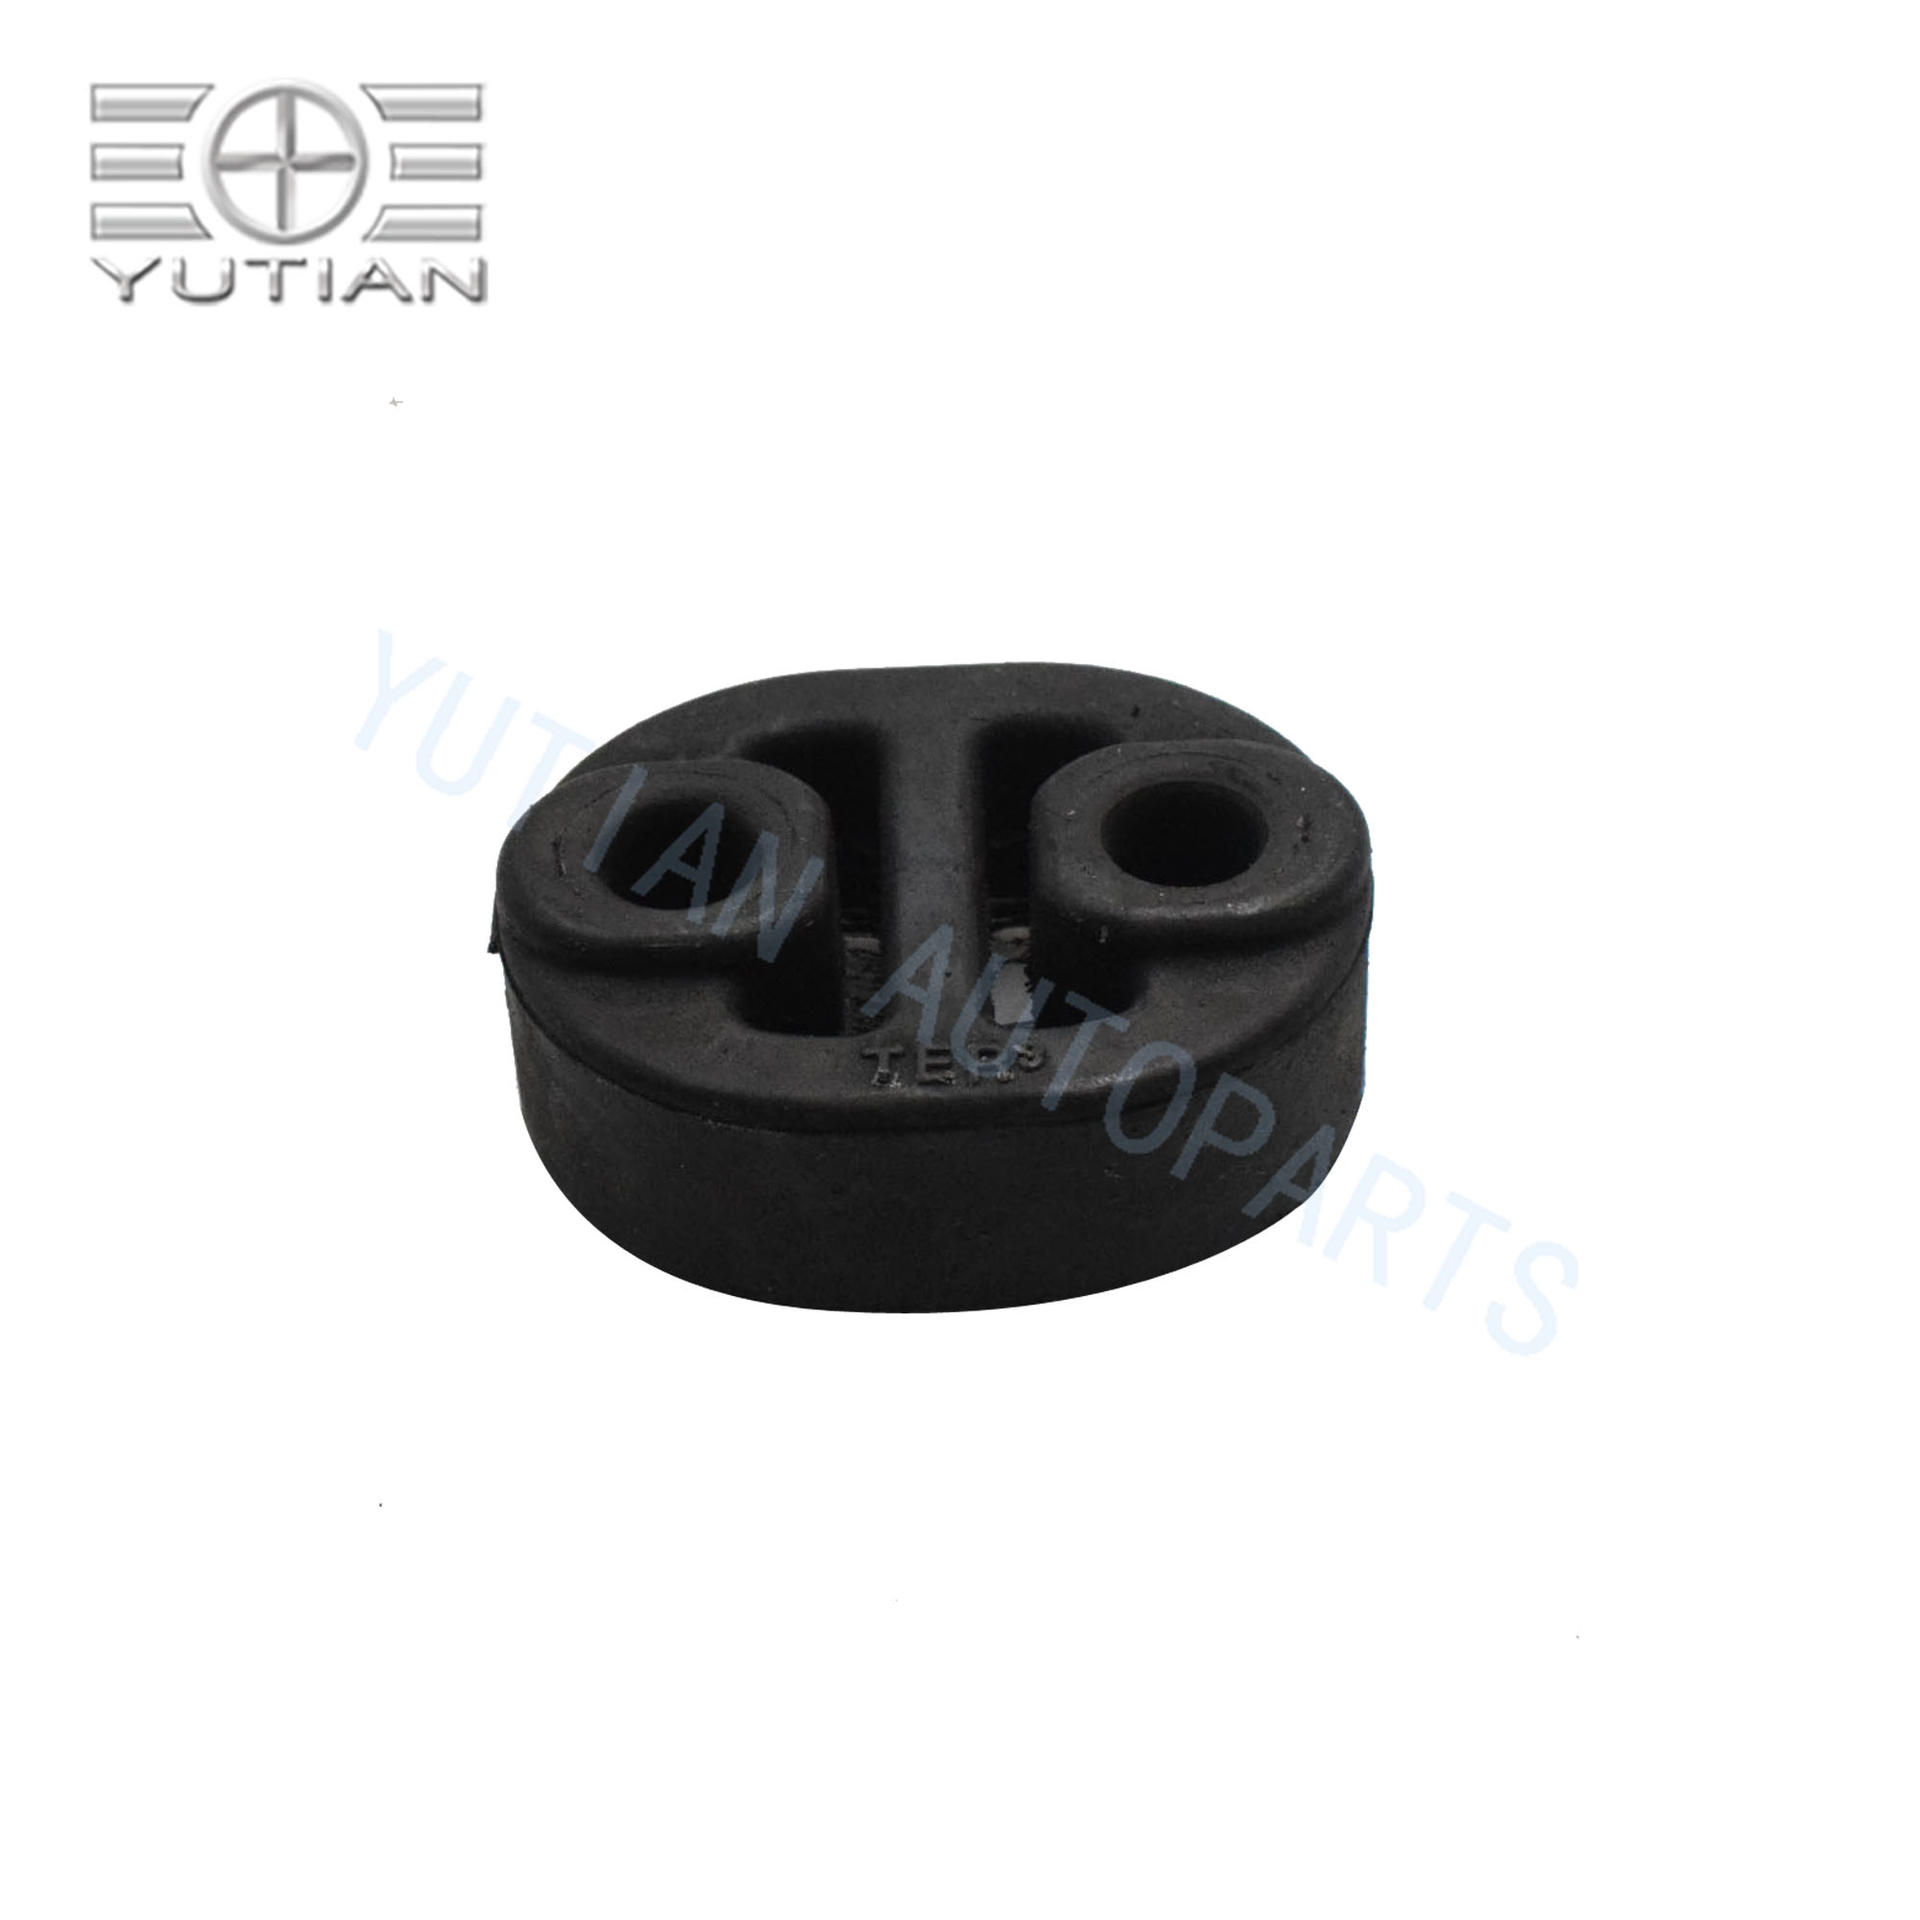 Exhaust Pipe Rubber Ring City Fit XRV OEM 18215-TF0-003